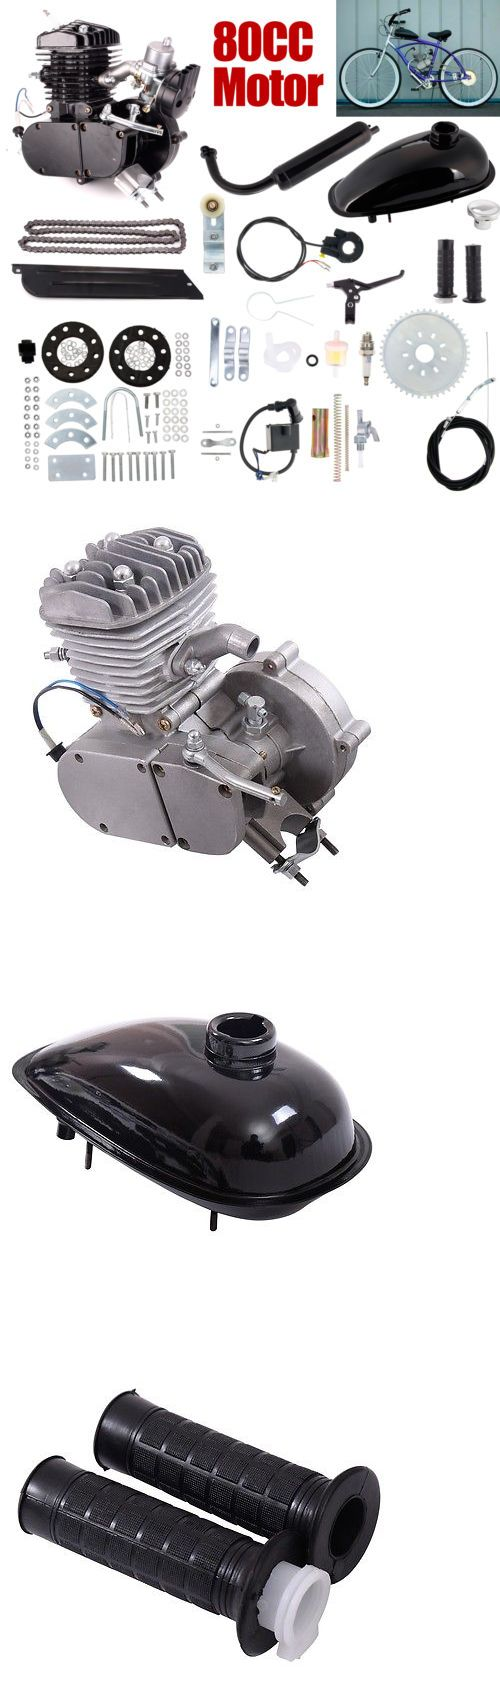 Other Bike Components and Parts 57267: 80Cc 2-Stroke Bicycle Gasoline Engine Motor Kit Diy Motorized Bike Black New -> BUY IT NOW ONLY: $96.99 on eBay!